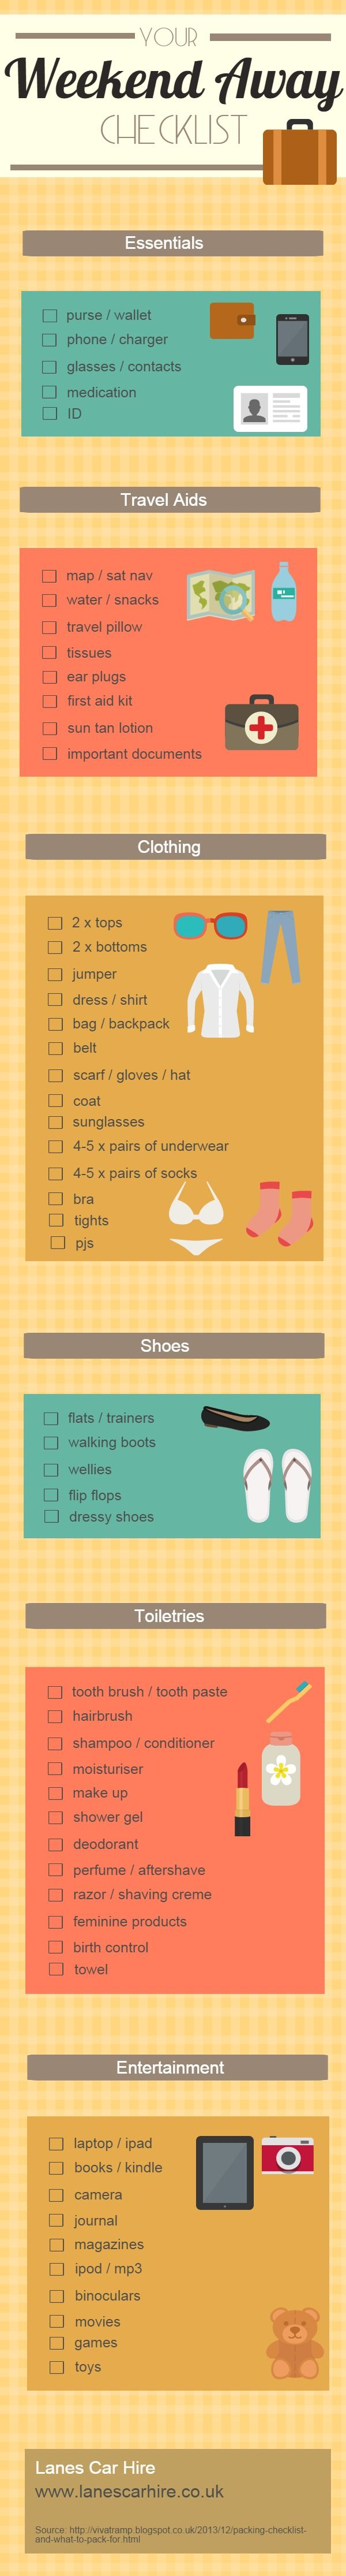 Your Weekend Away Checklist Infographic Travel Checklist